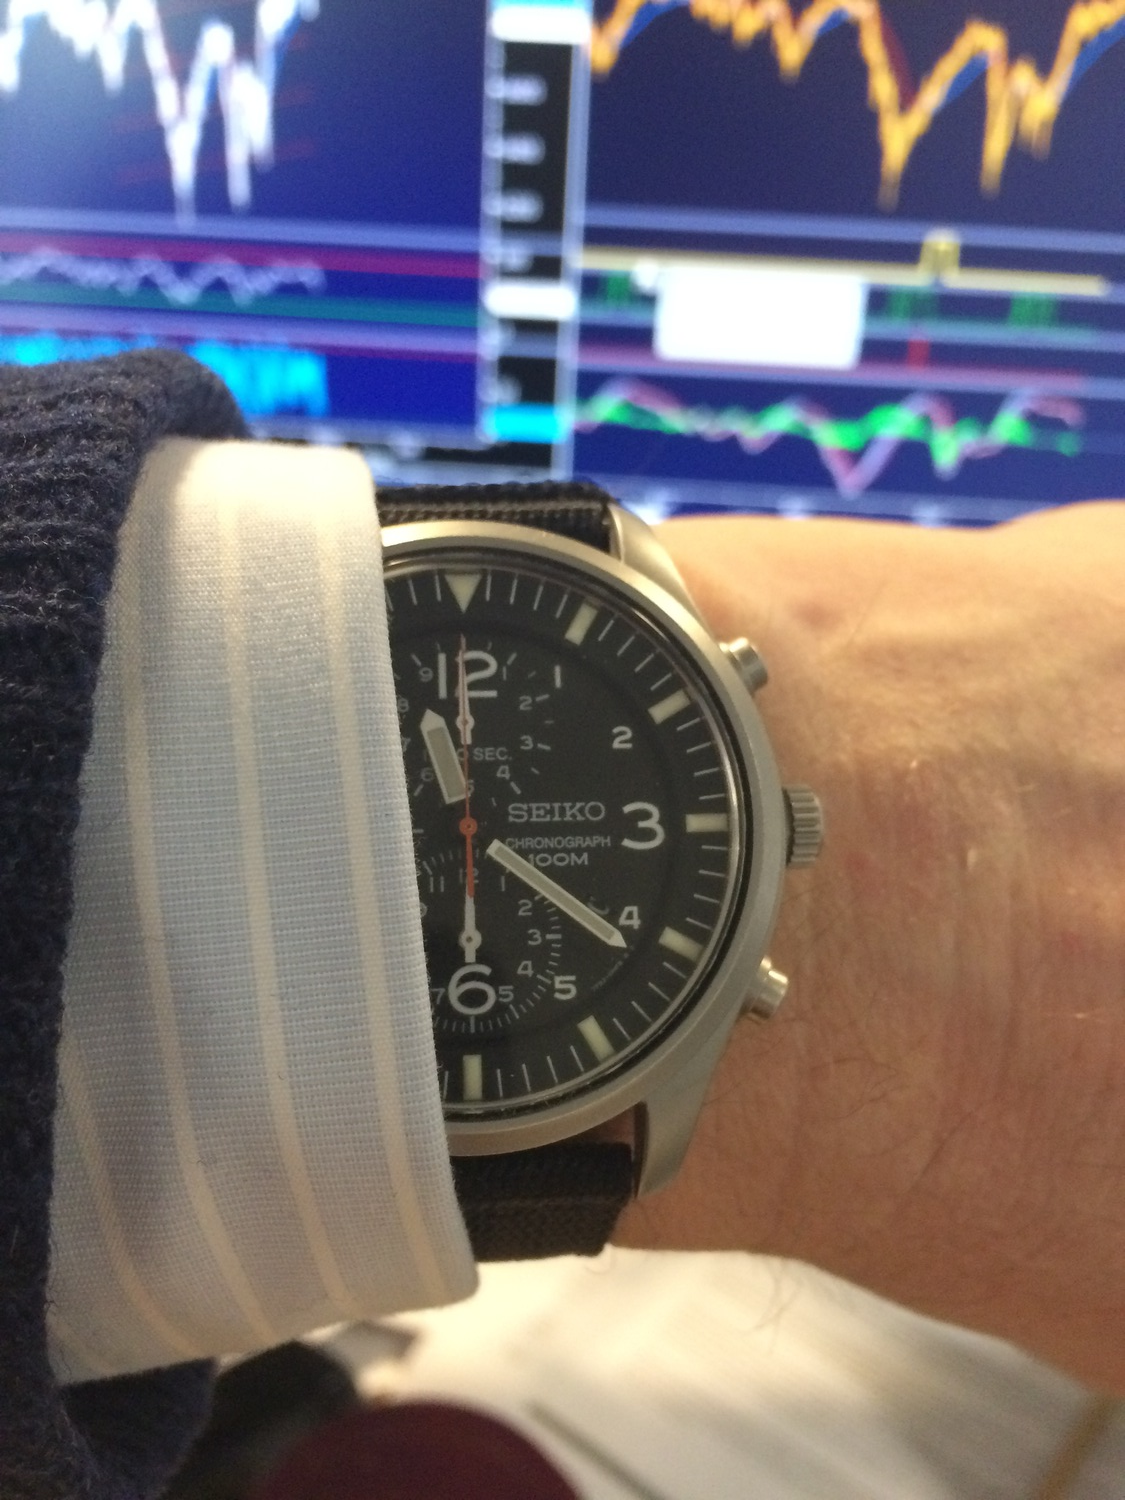 I'll mostly be sticking with my £70 Seiko thanks